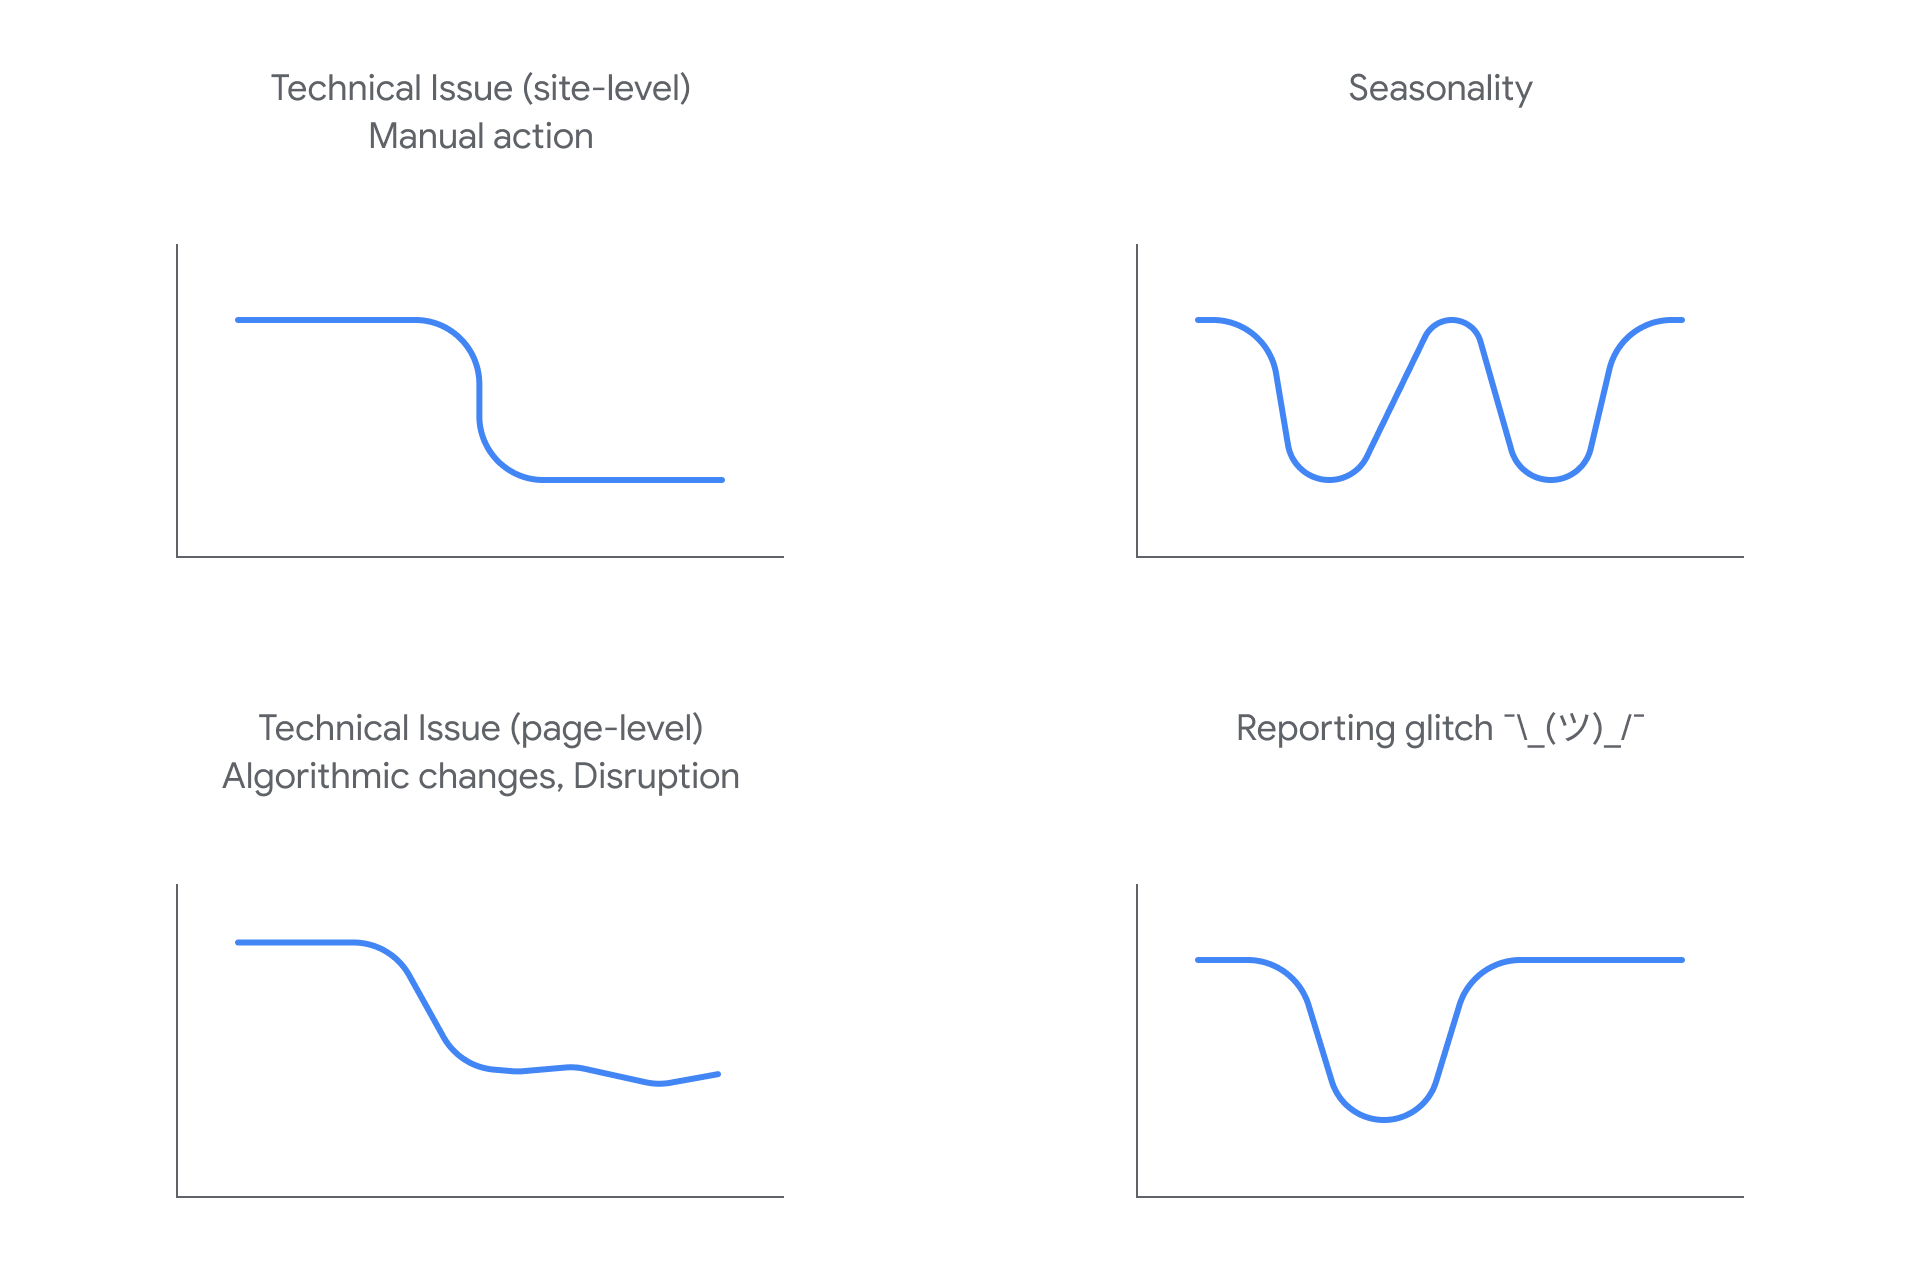 Illustration of the Main causes for drops in Search traffic